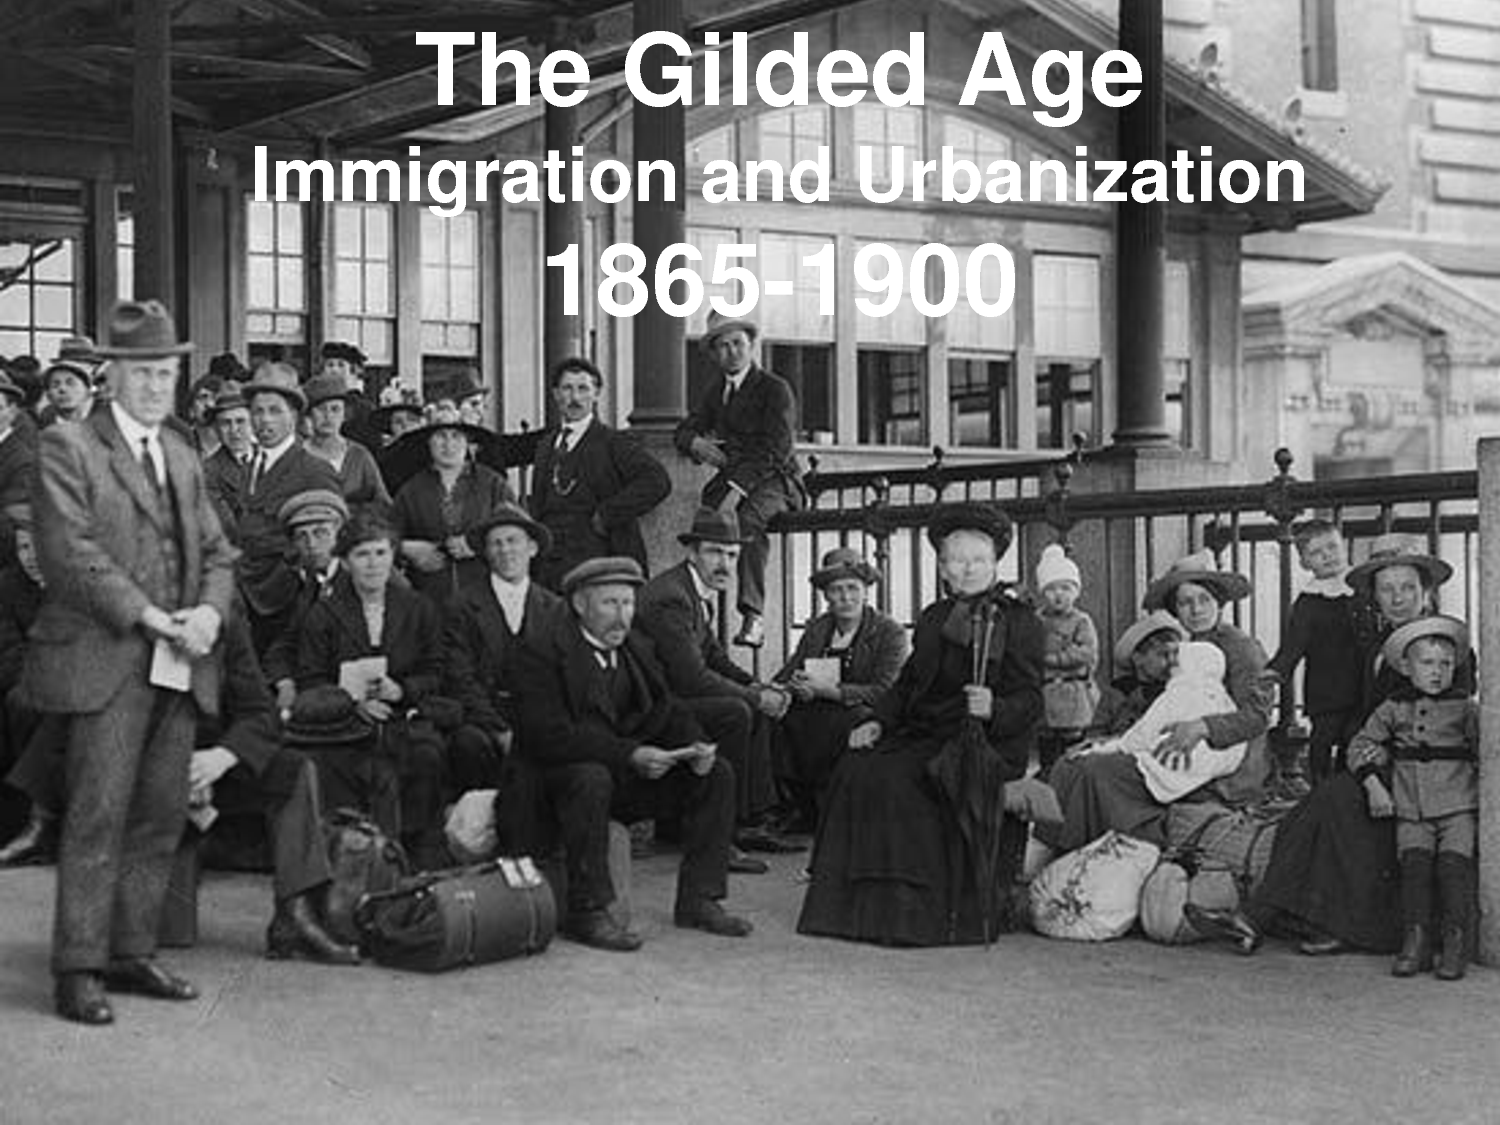 gilded age immigration